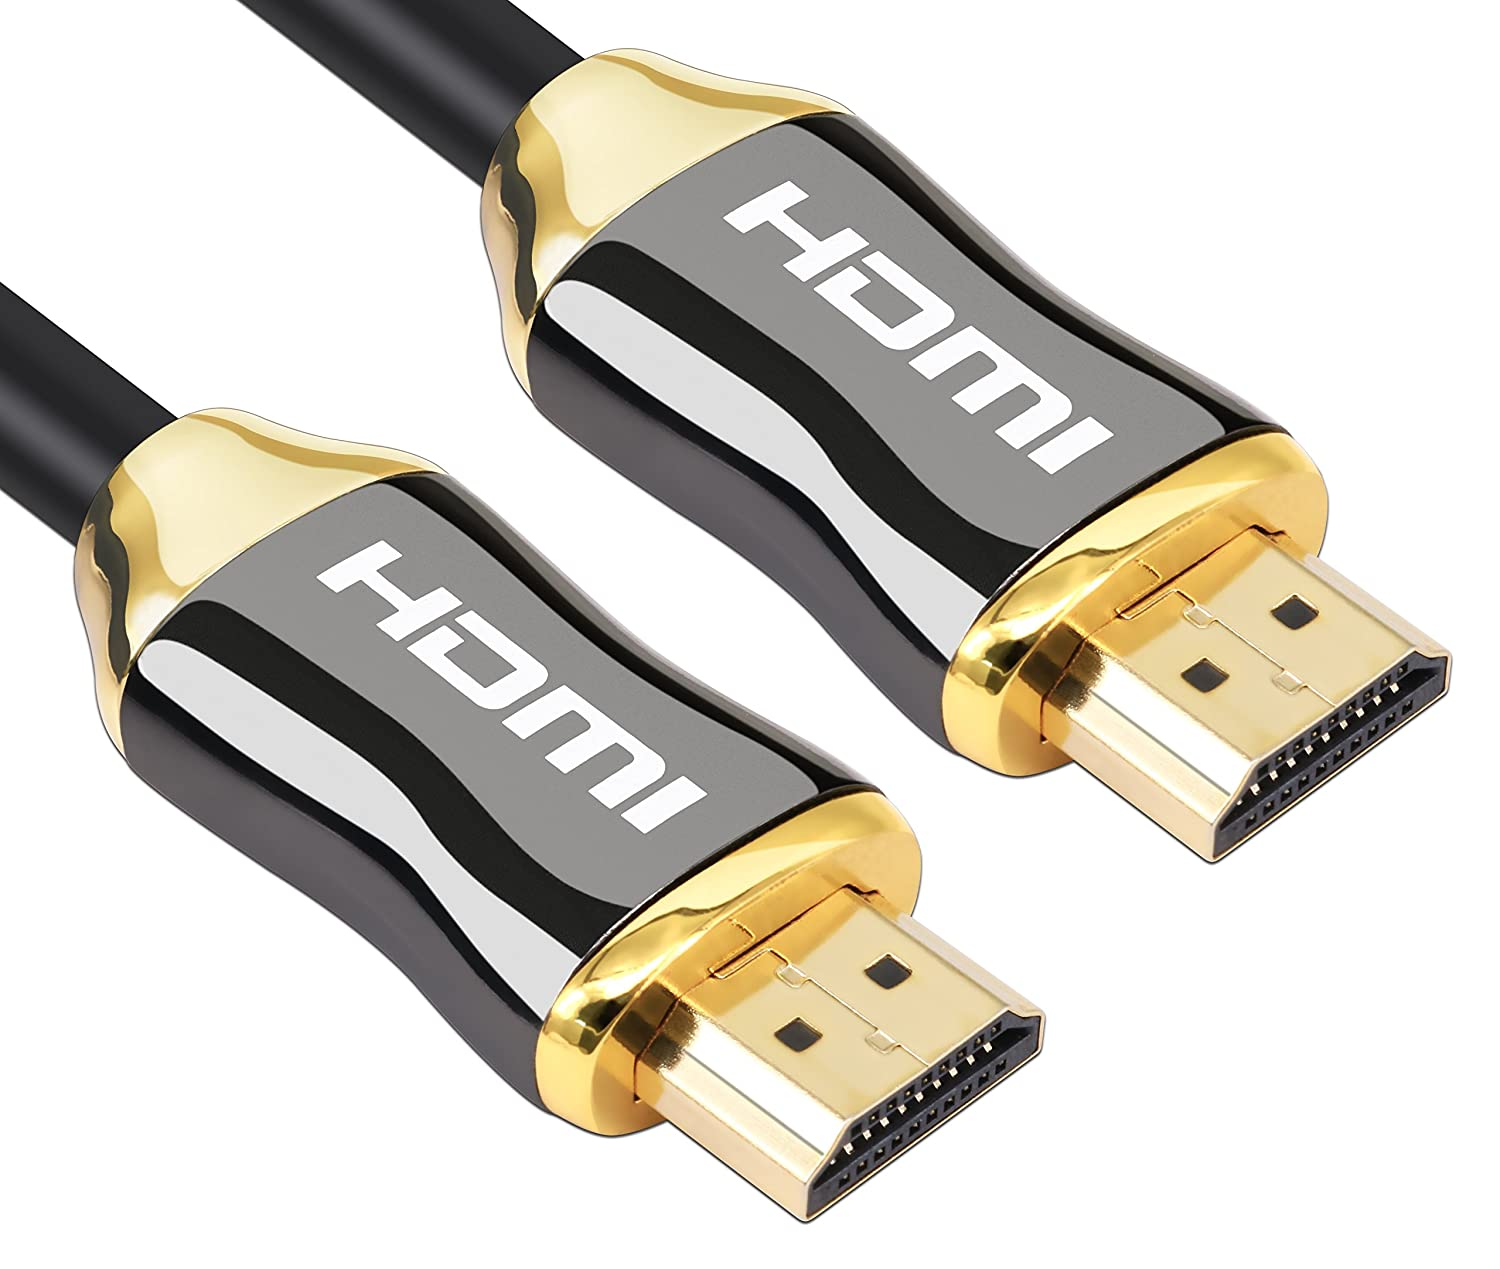 Amazon.com: KIN&P HDMI Cable 3ft Ultra High Speed HDMI 2.0 (4K) HDMI cables for PlayStation PS3 PS4 PC Apple TV, Support 2160P,HD 1080P, 3D,4k,Ethernet ...